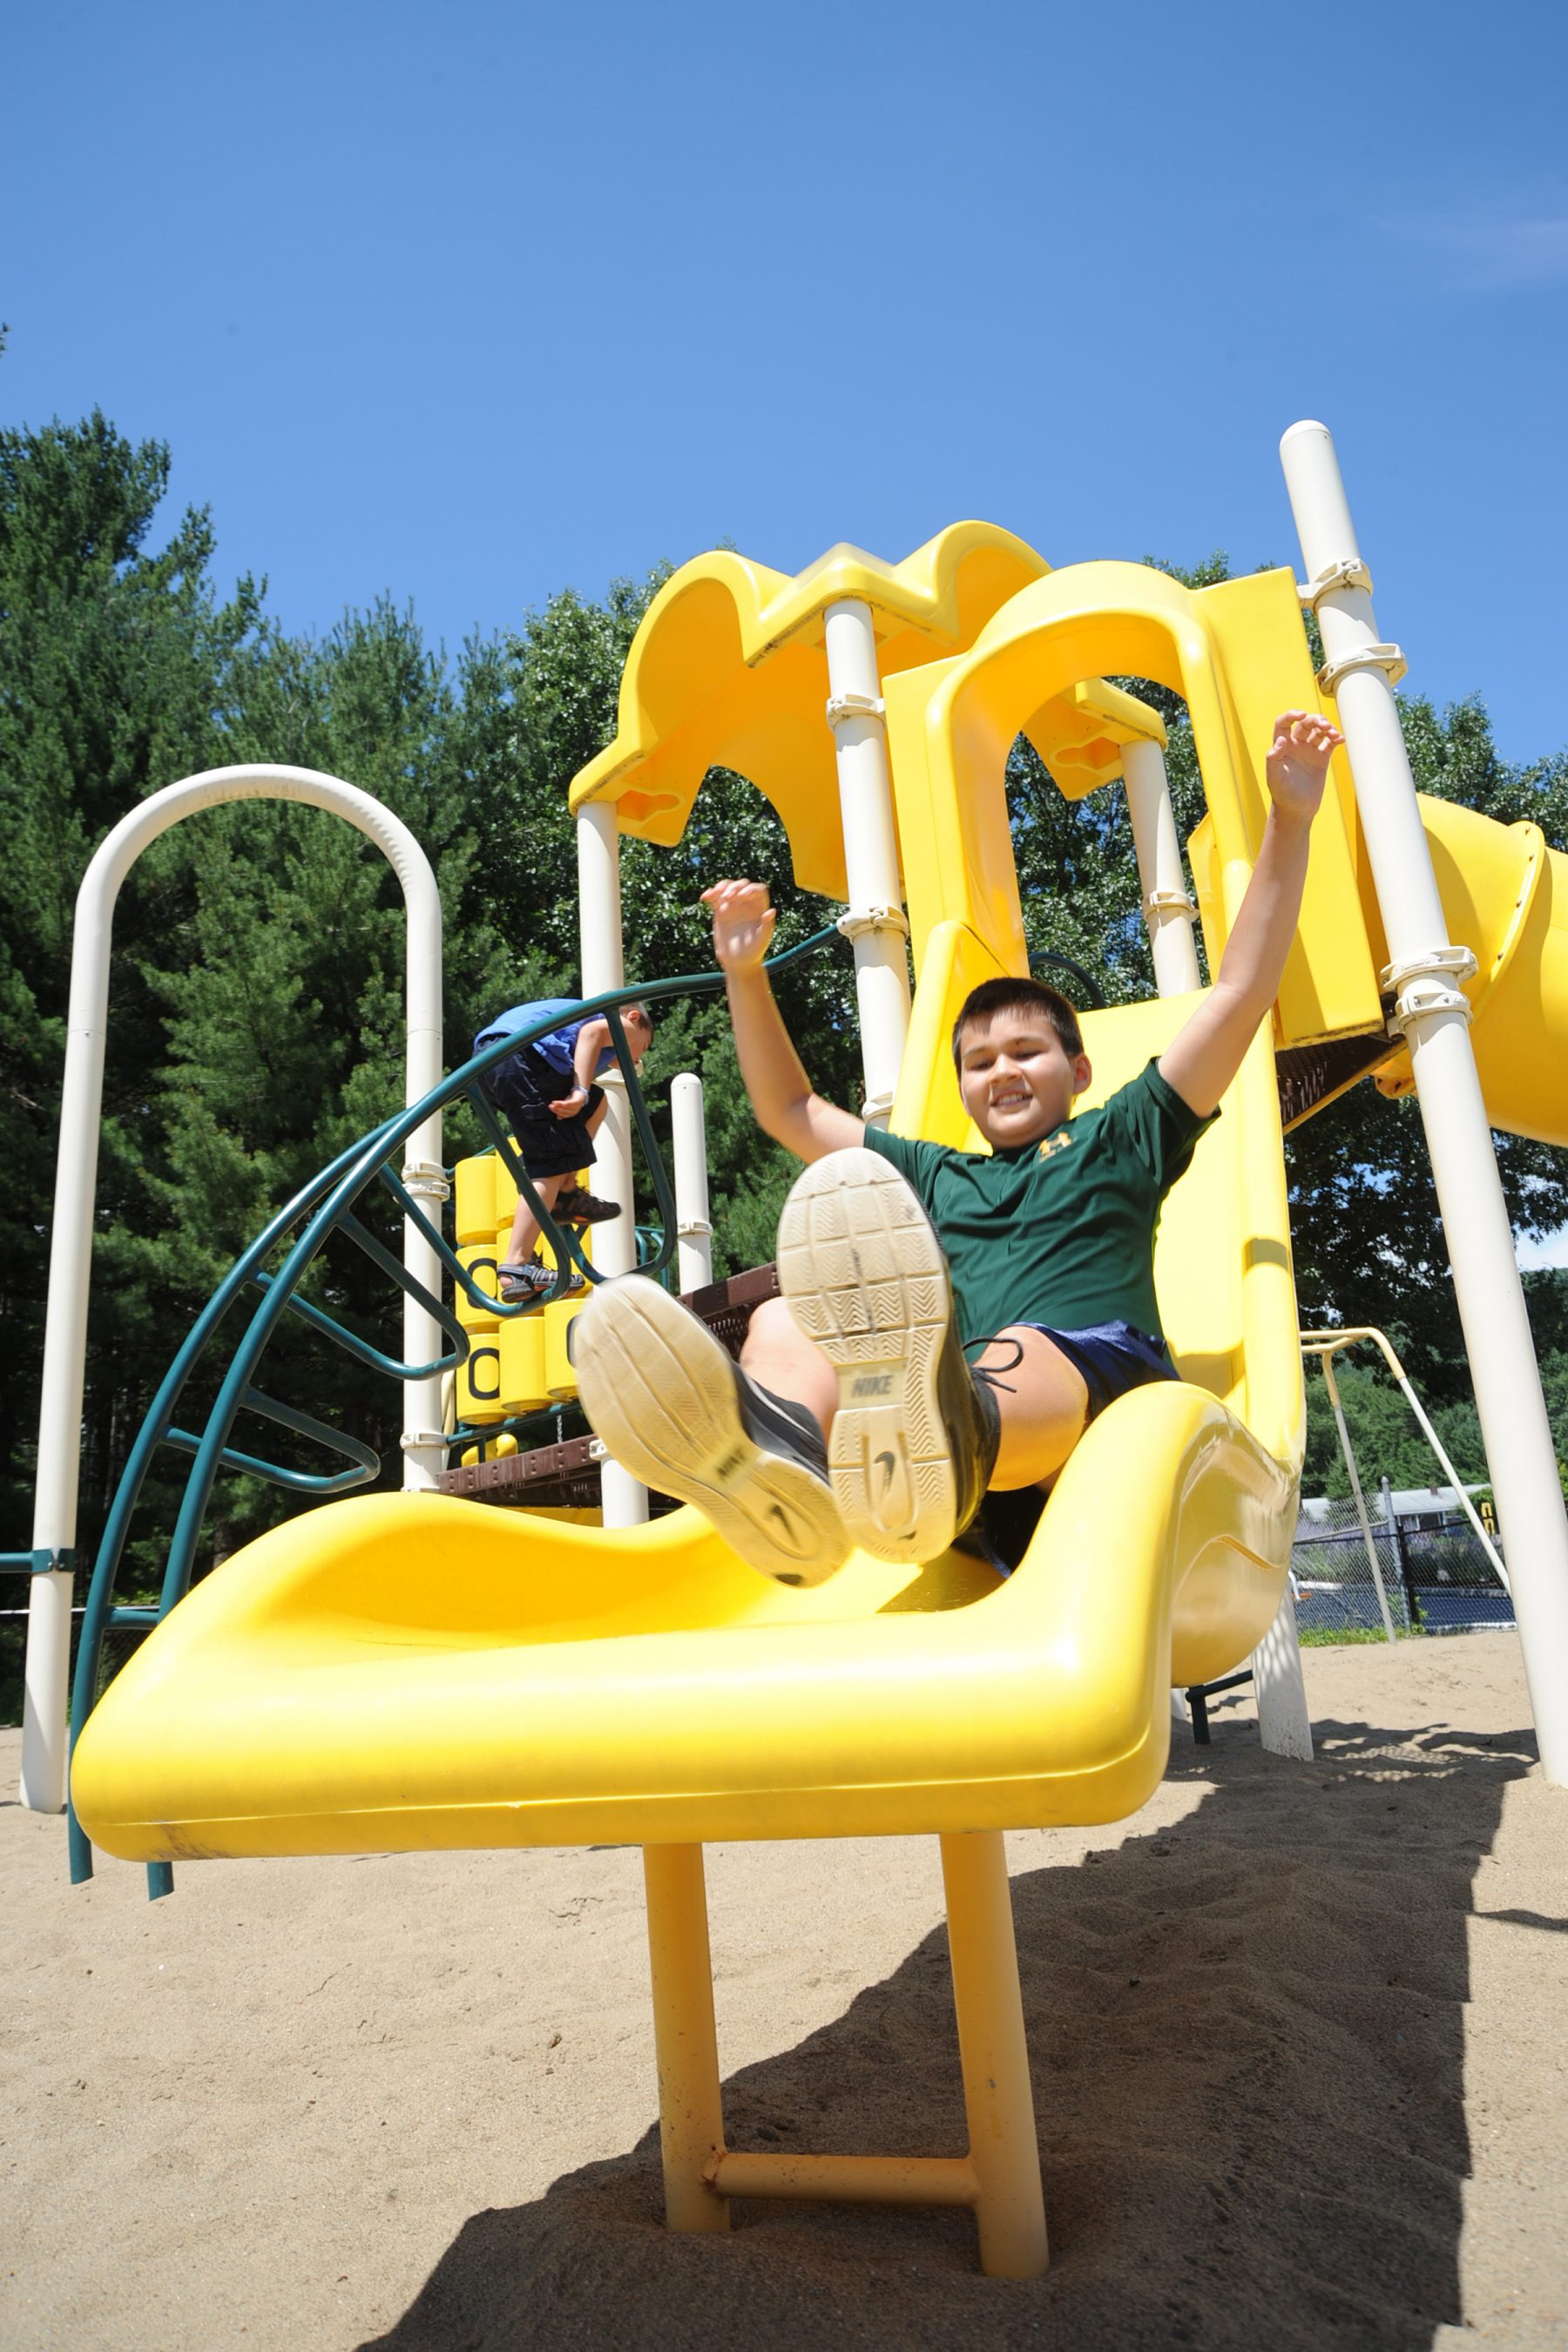 We have 4 full playgrounds located throughout the park